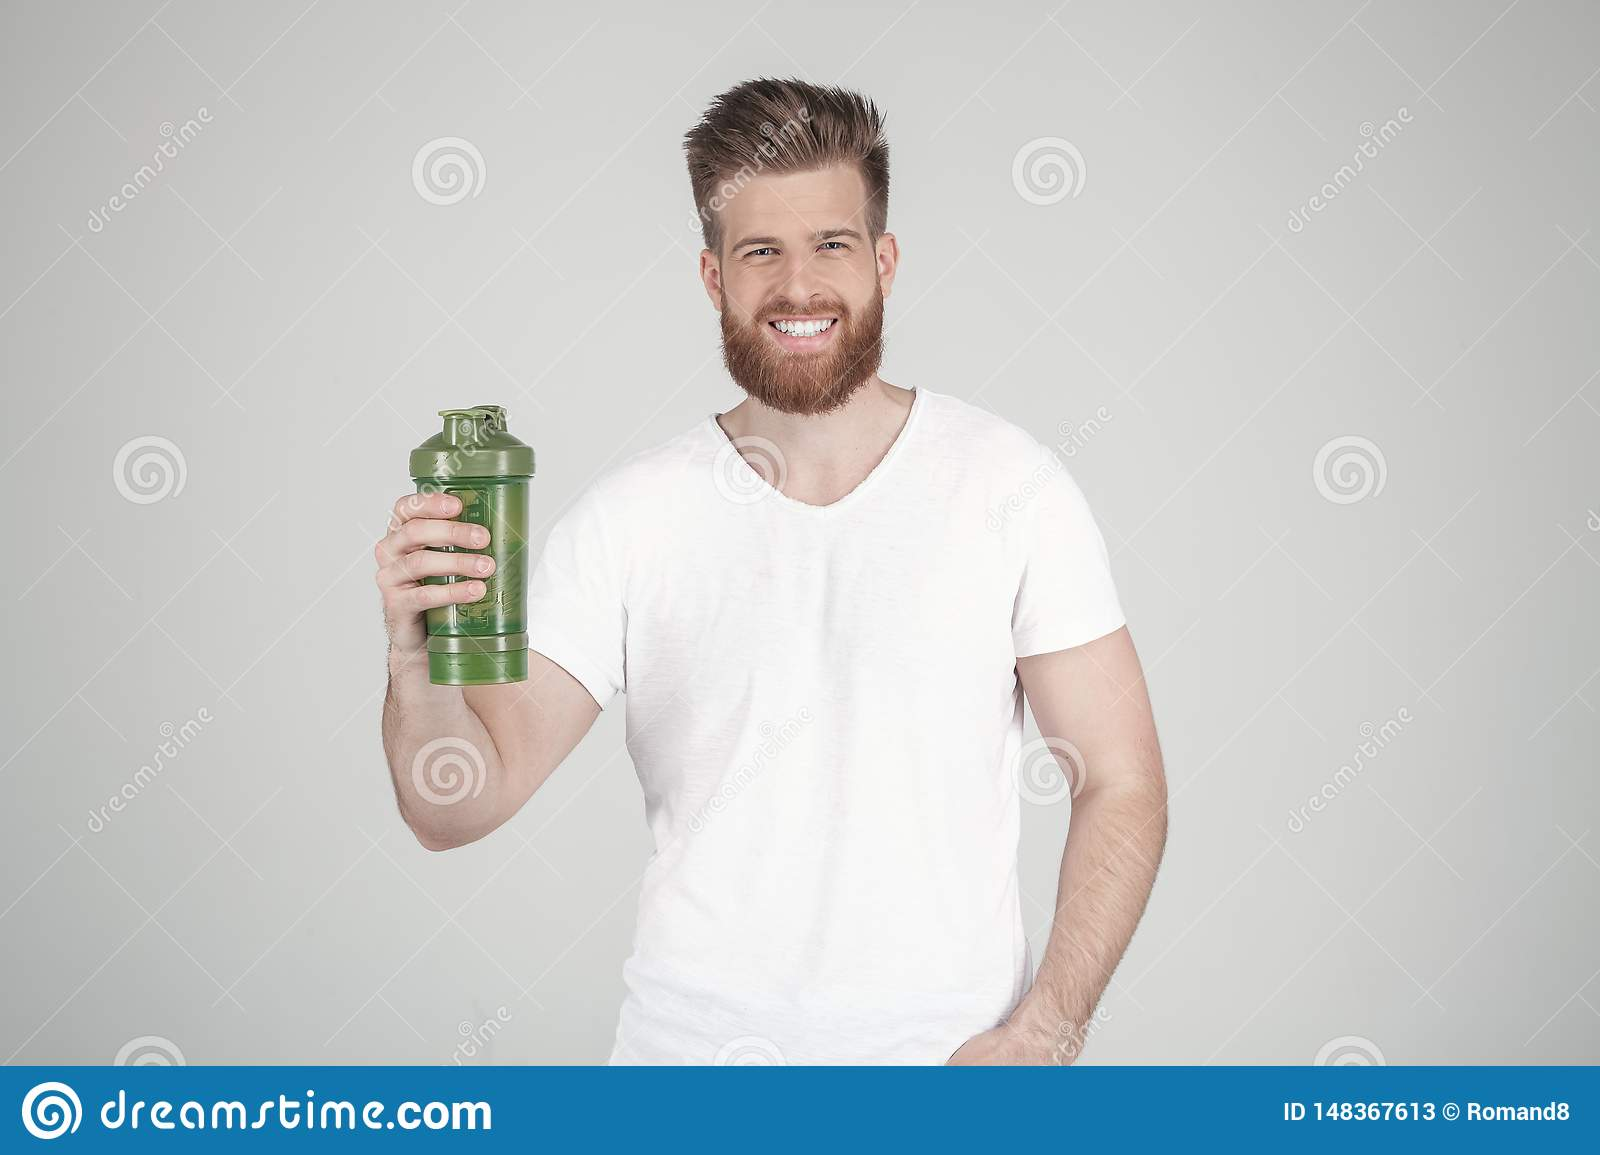 A portrait of a beautiful man with a beard and a fashionable hairstyle, dressed in casual clothing, holds a sports shaker and